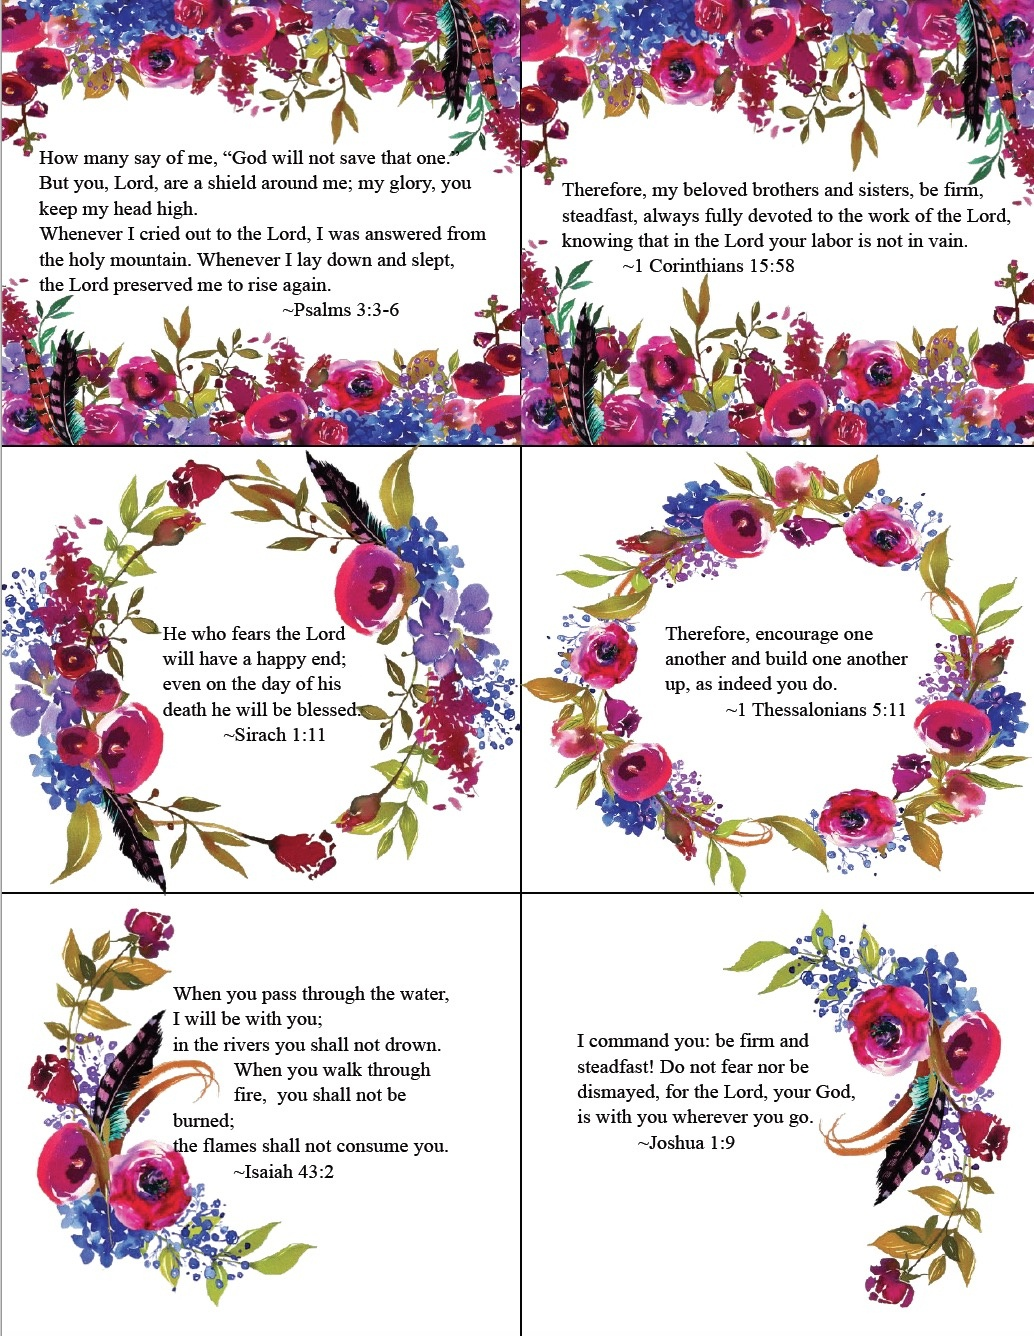 Free Printable Bible Verse Cards For When You Need Encouragement - Free Printable Bible Verse Cards